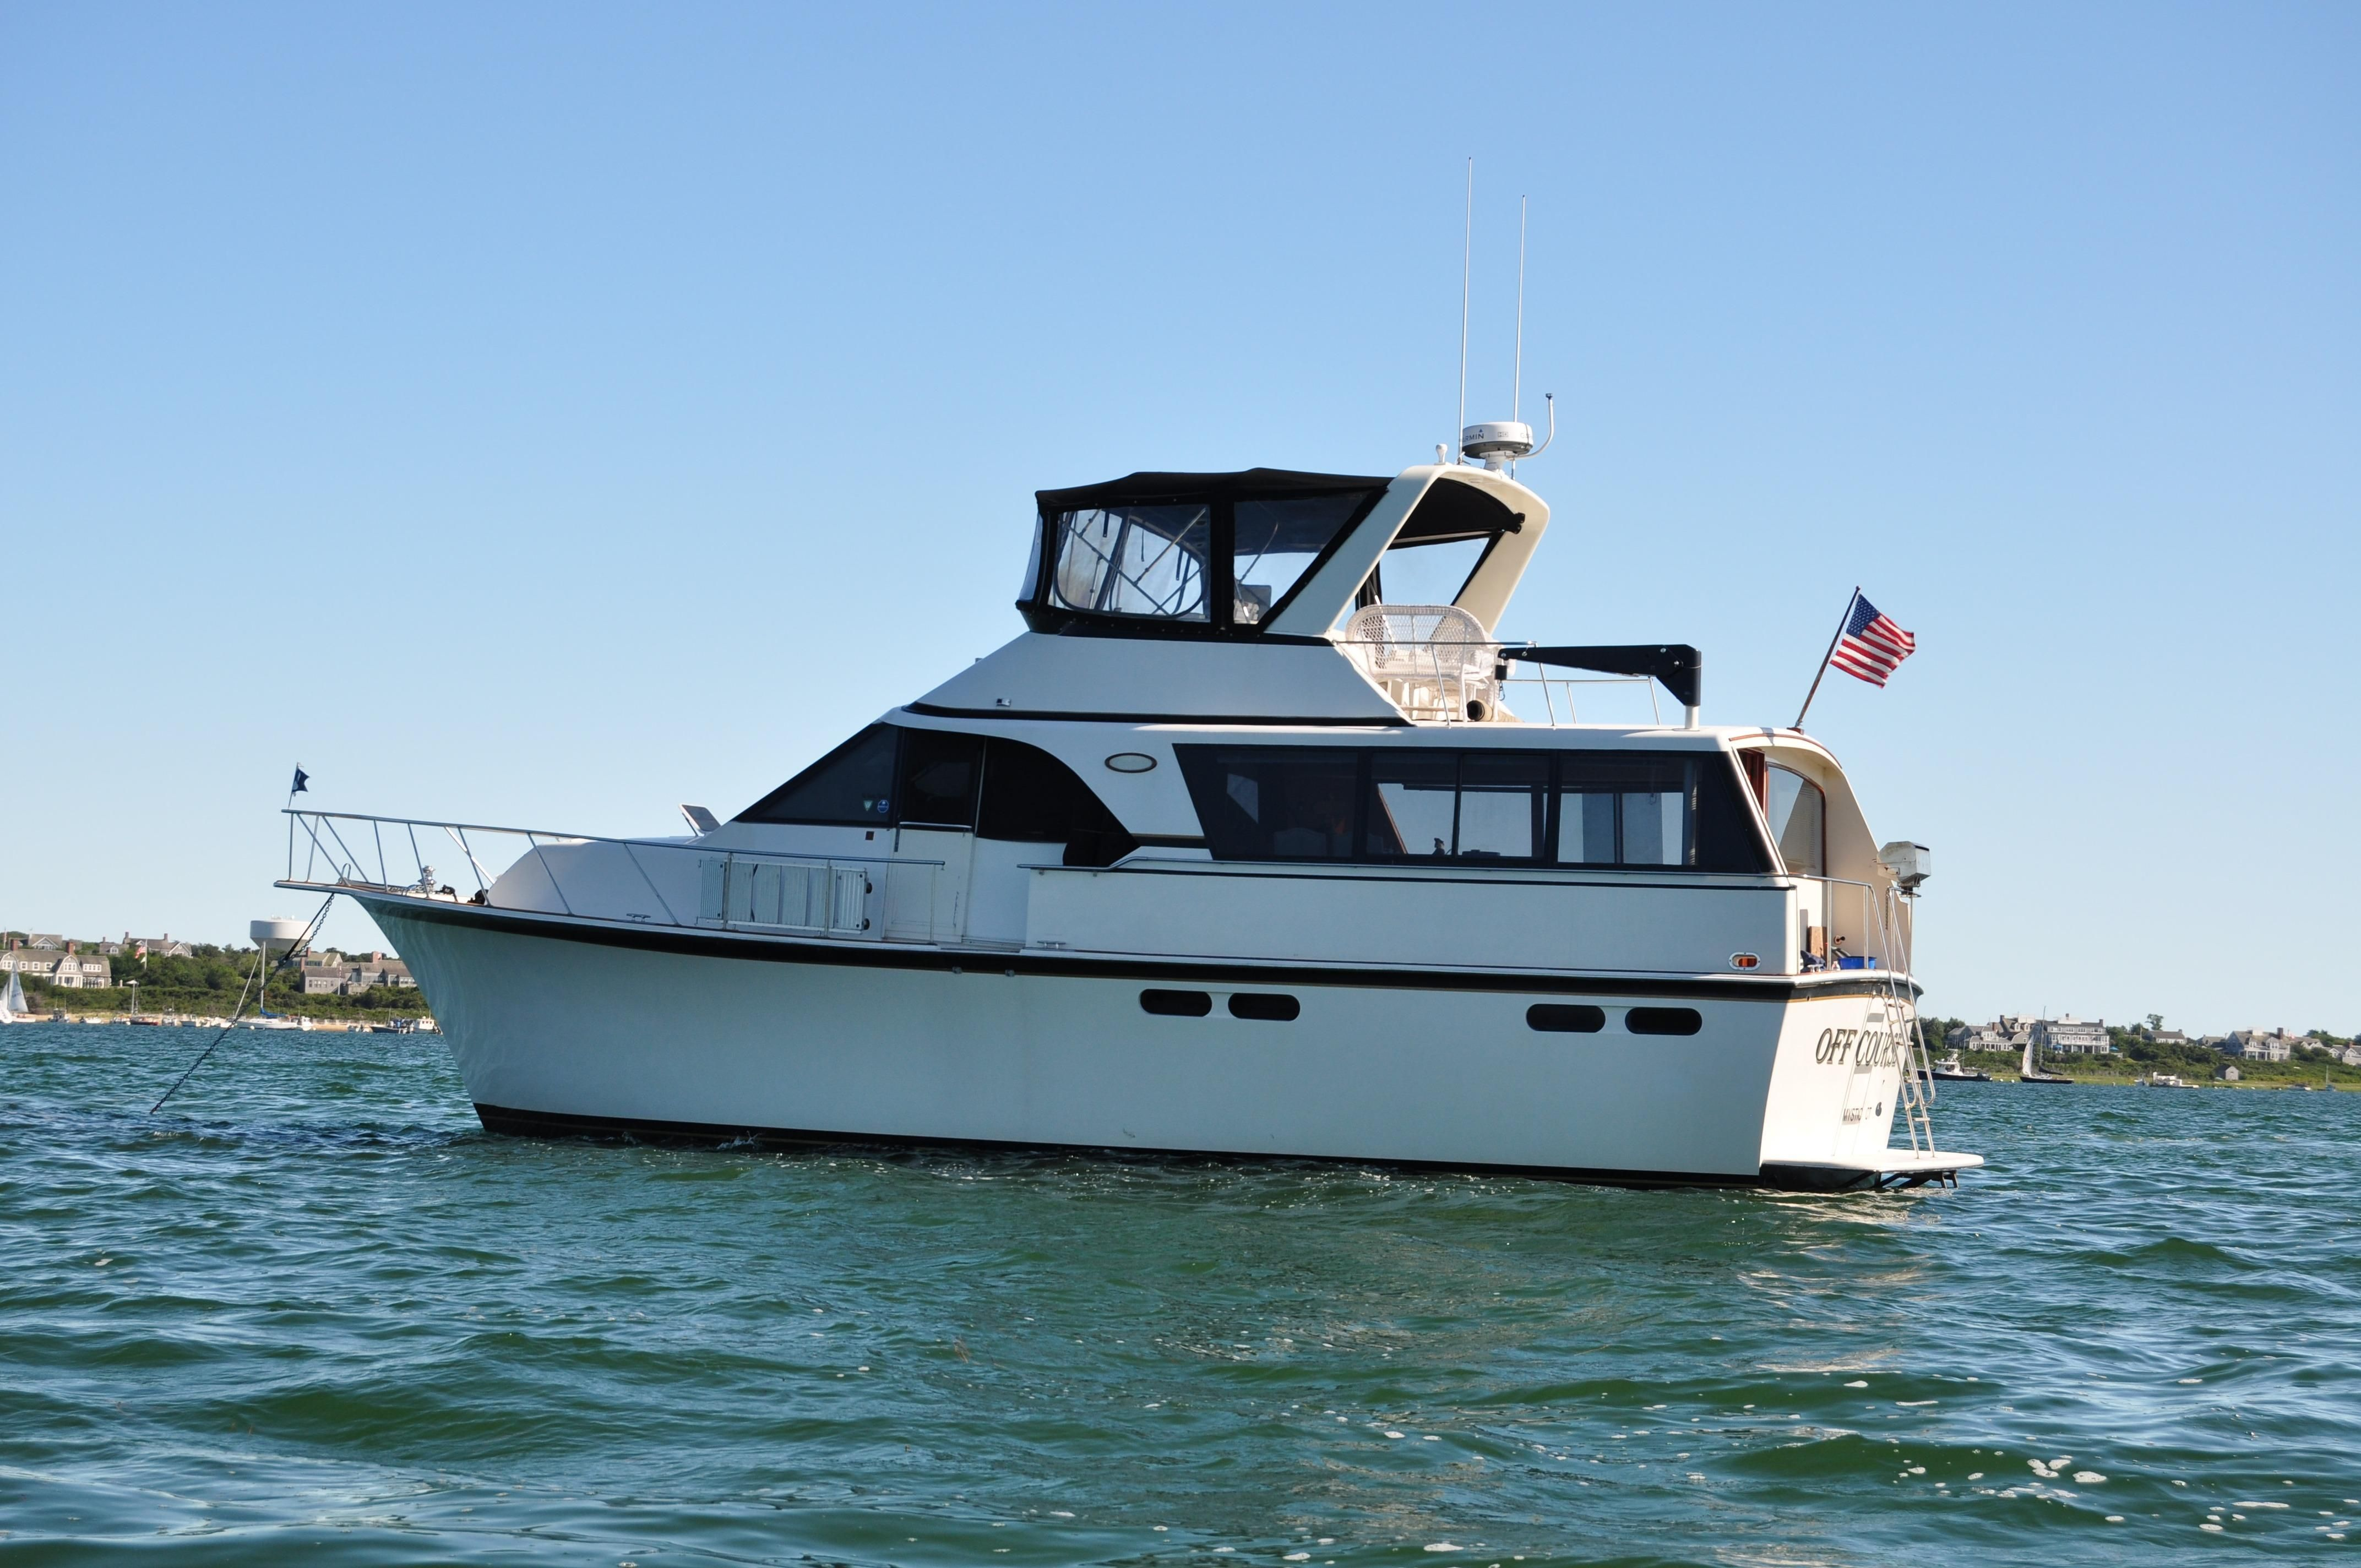 1990 ocean 48 motor yacht power boat for sale www